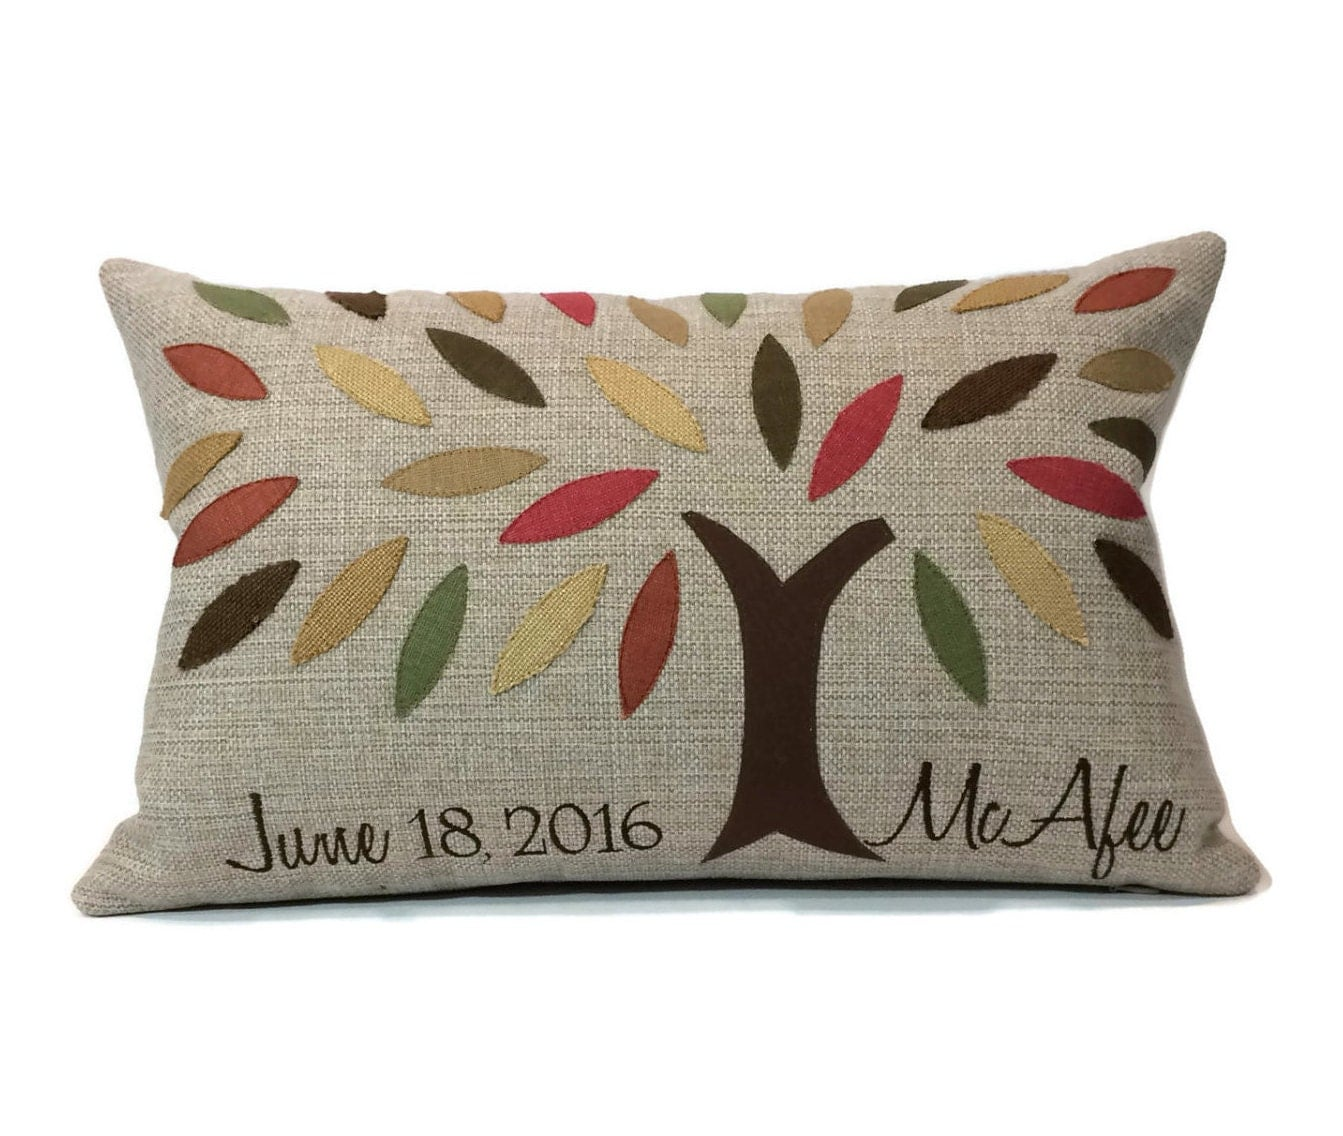 Throw Pillow Fabric Calculator : Family Tree Applique and Embroidered Decorative Throw Pillow Cover - Embroidered Pillow Cover ...